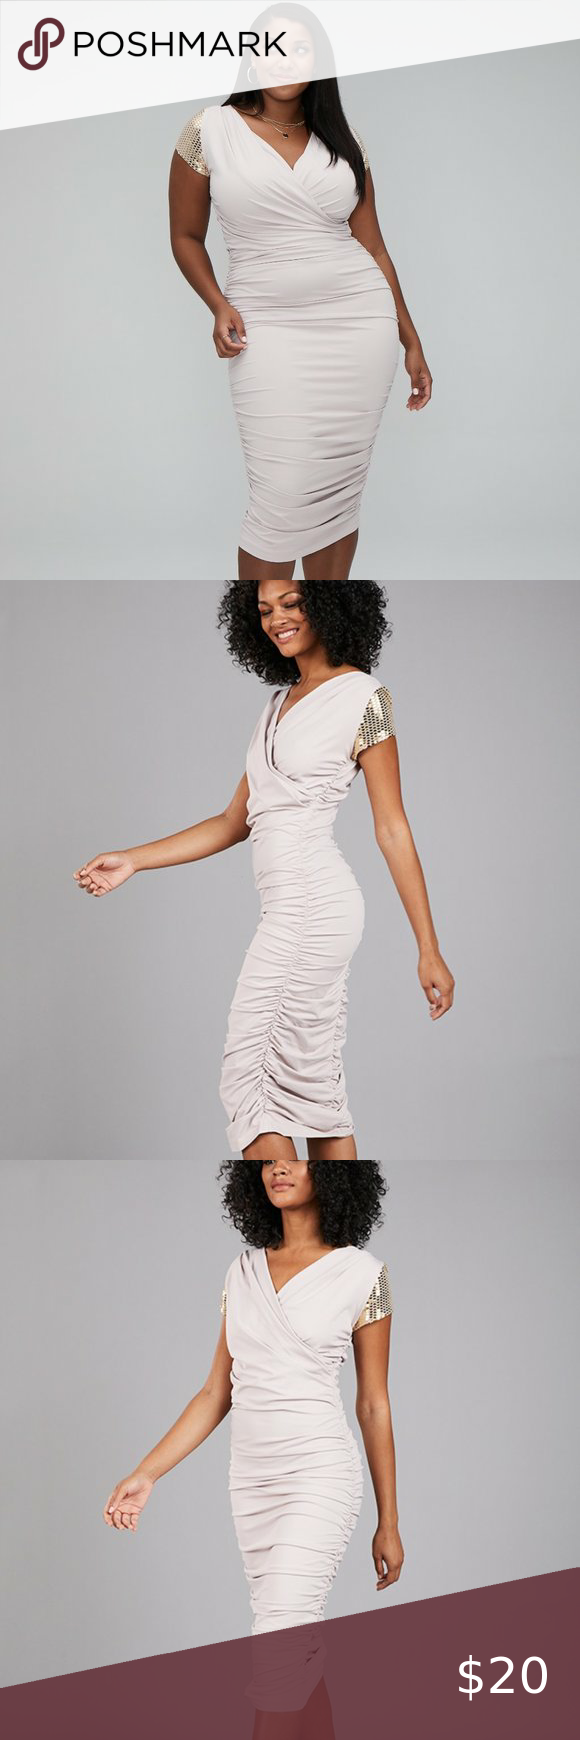 Spellbound Ruched Midi Dress in 2020 Ruched midi dress